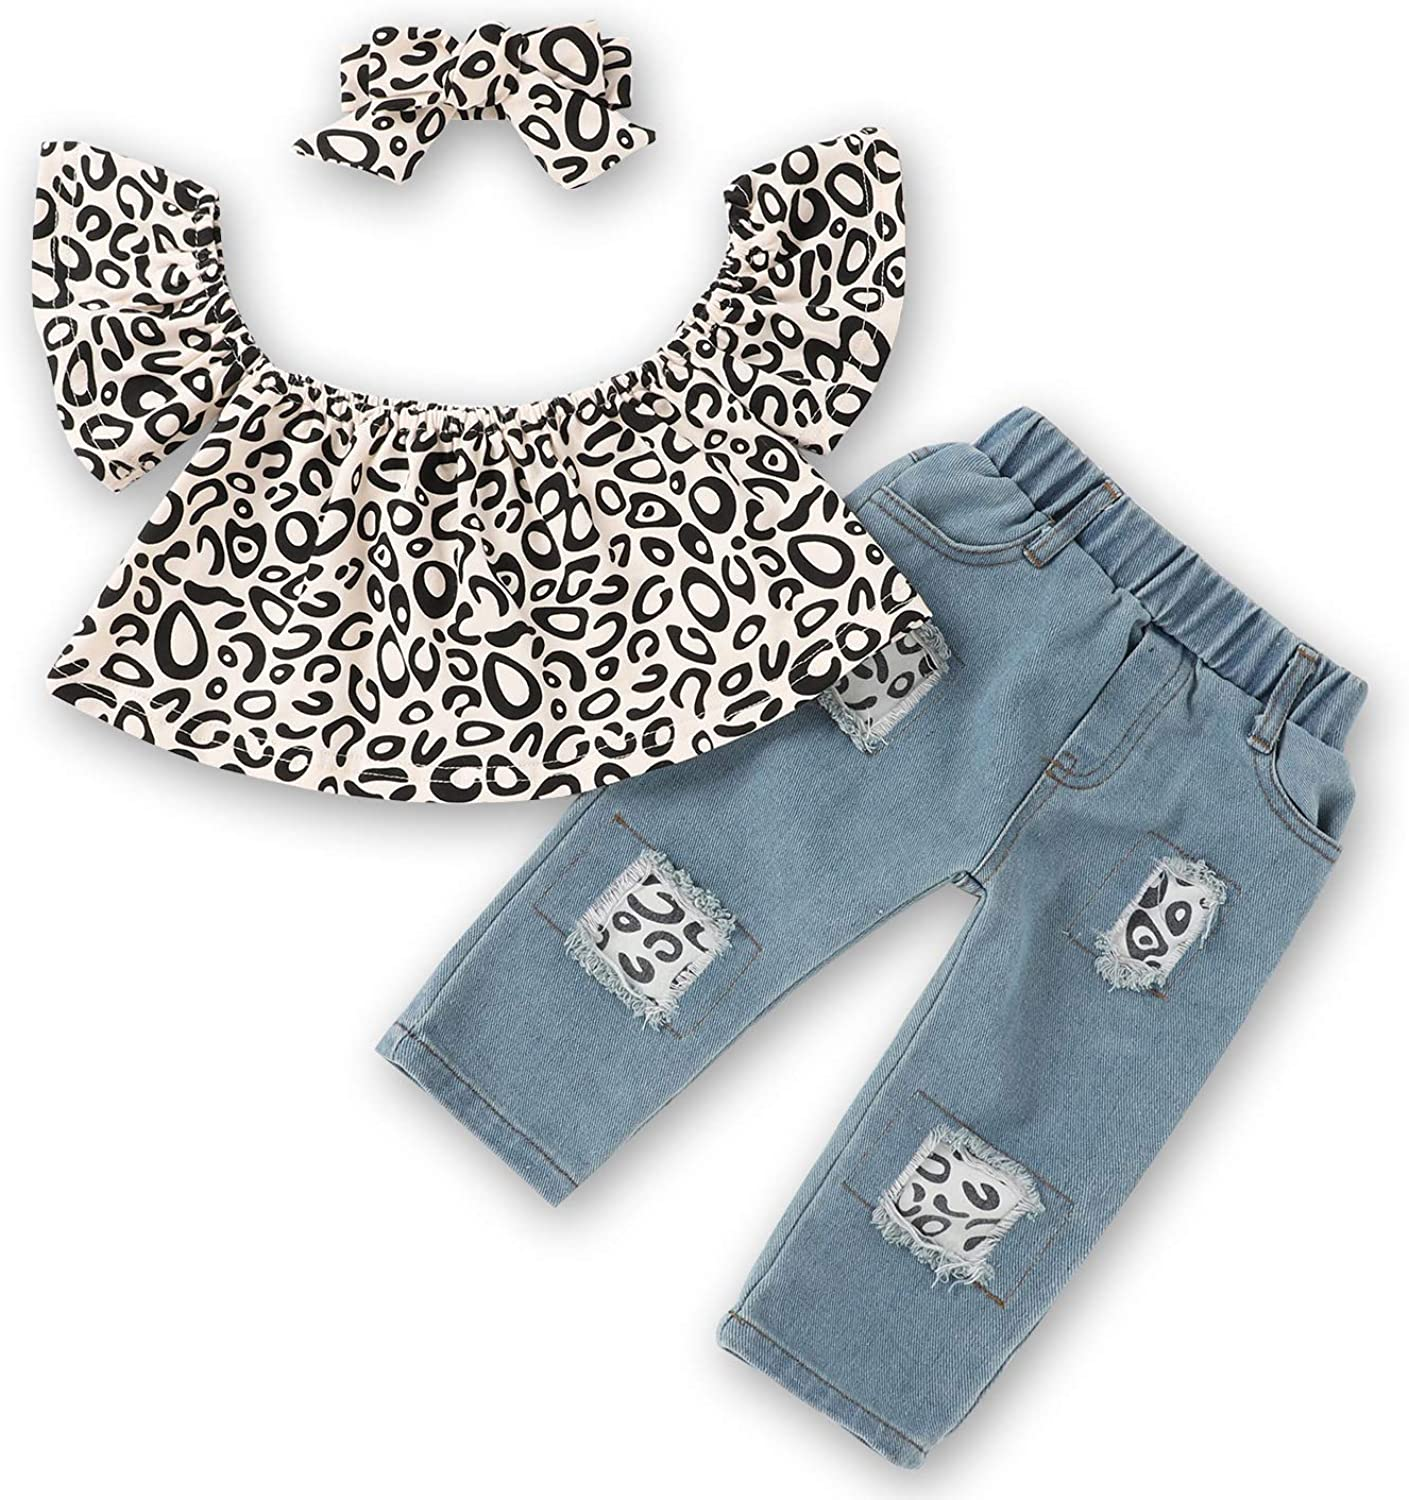 Toddler Girls Clothes Blue Ruffle Short Sleeve Top+Denim Ripped Long Jeans Outfits Baby Girl Clothing